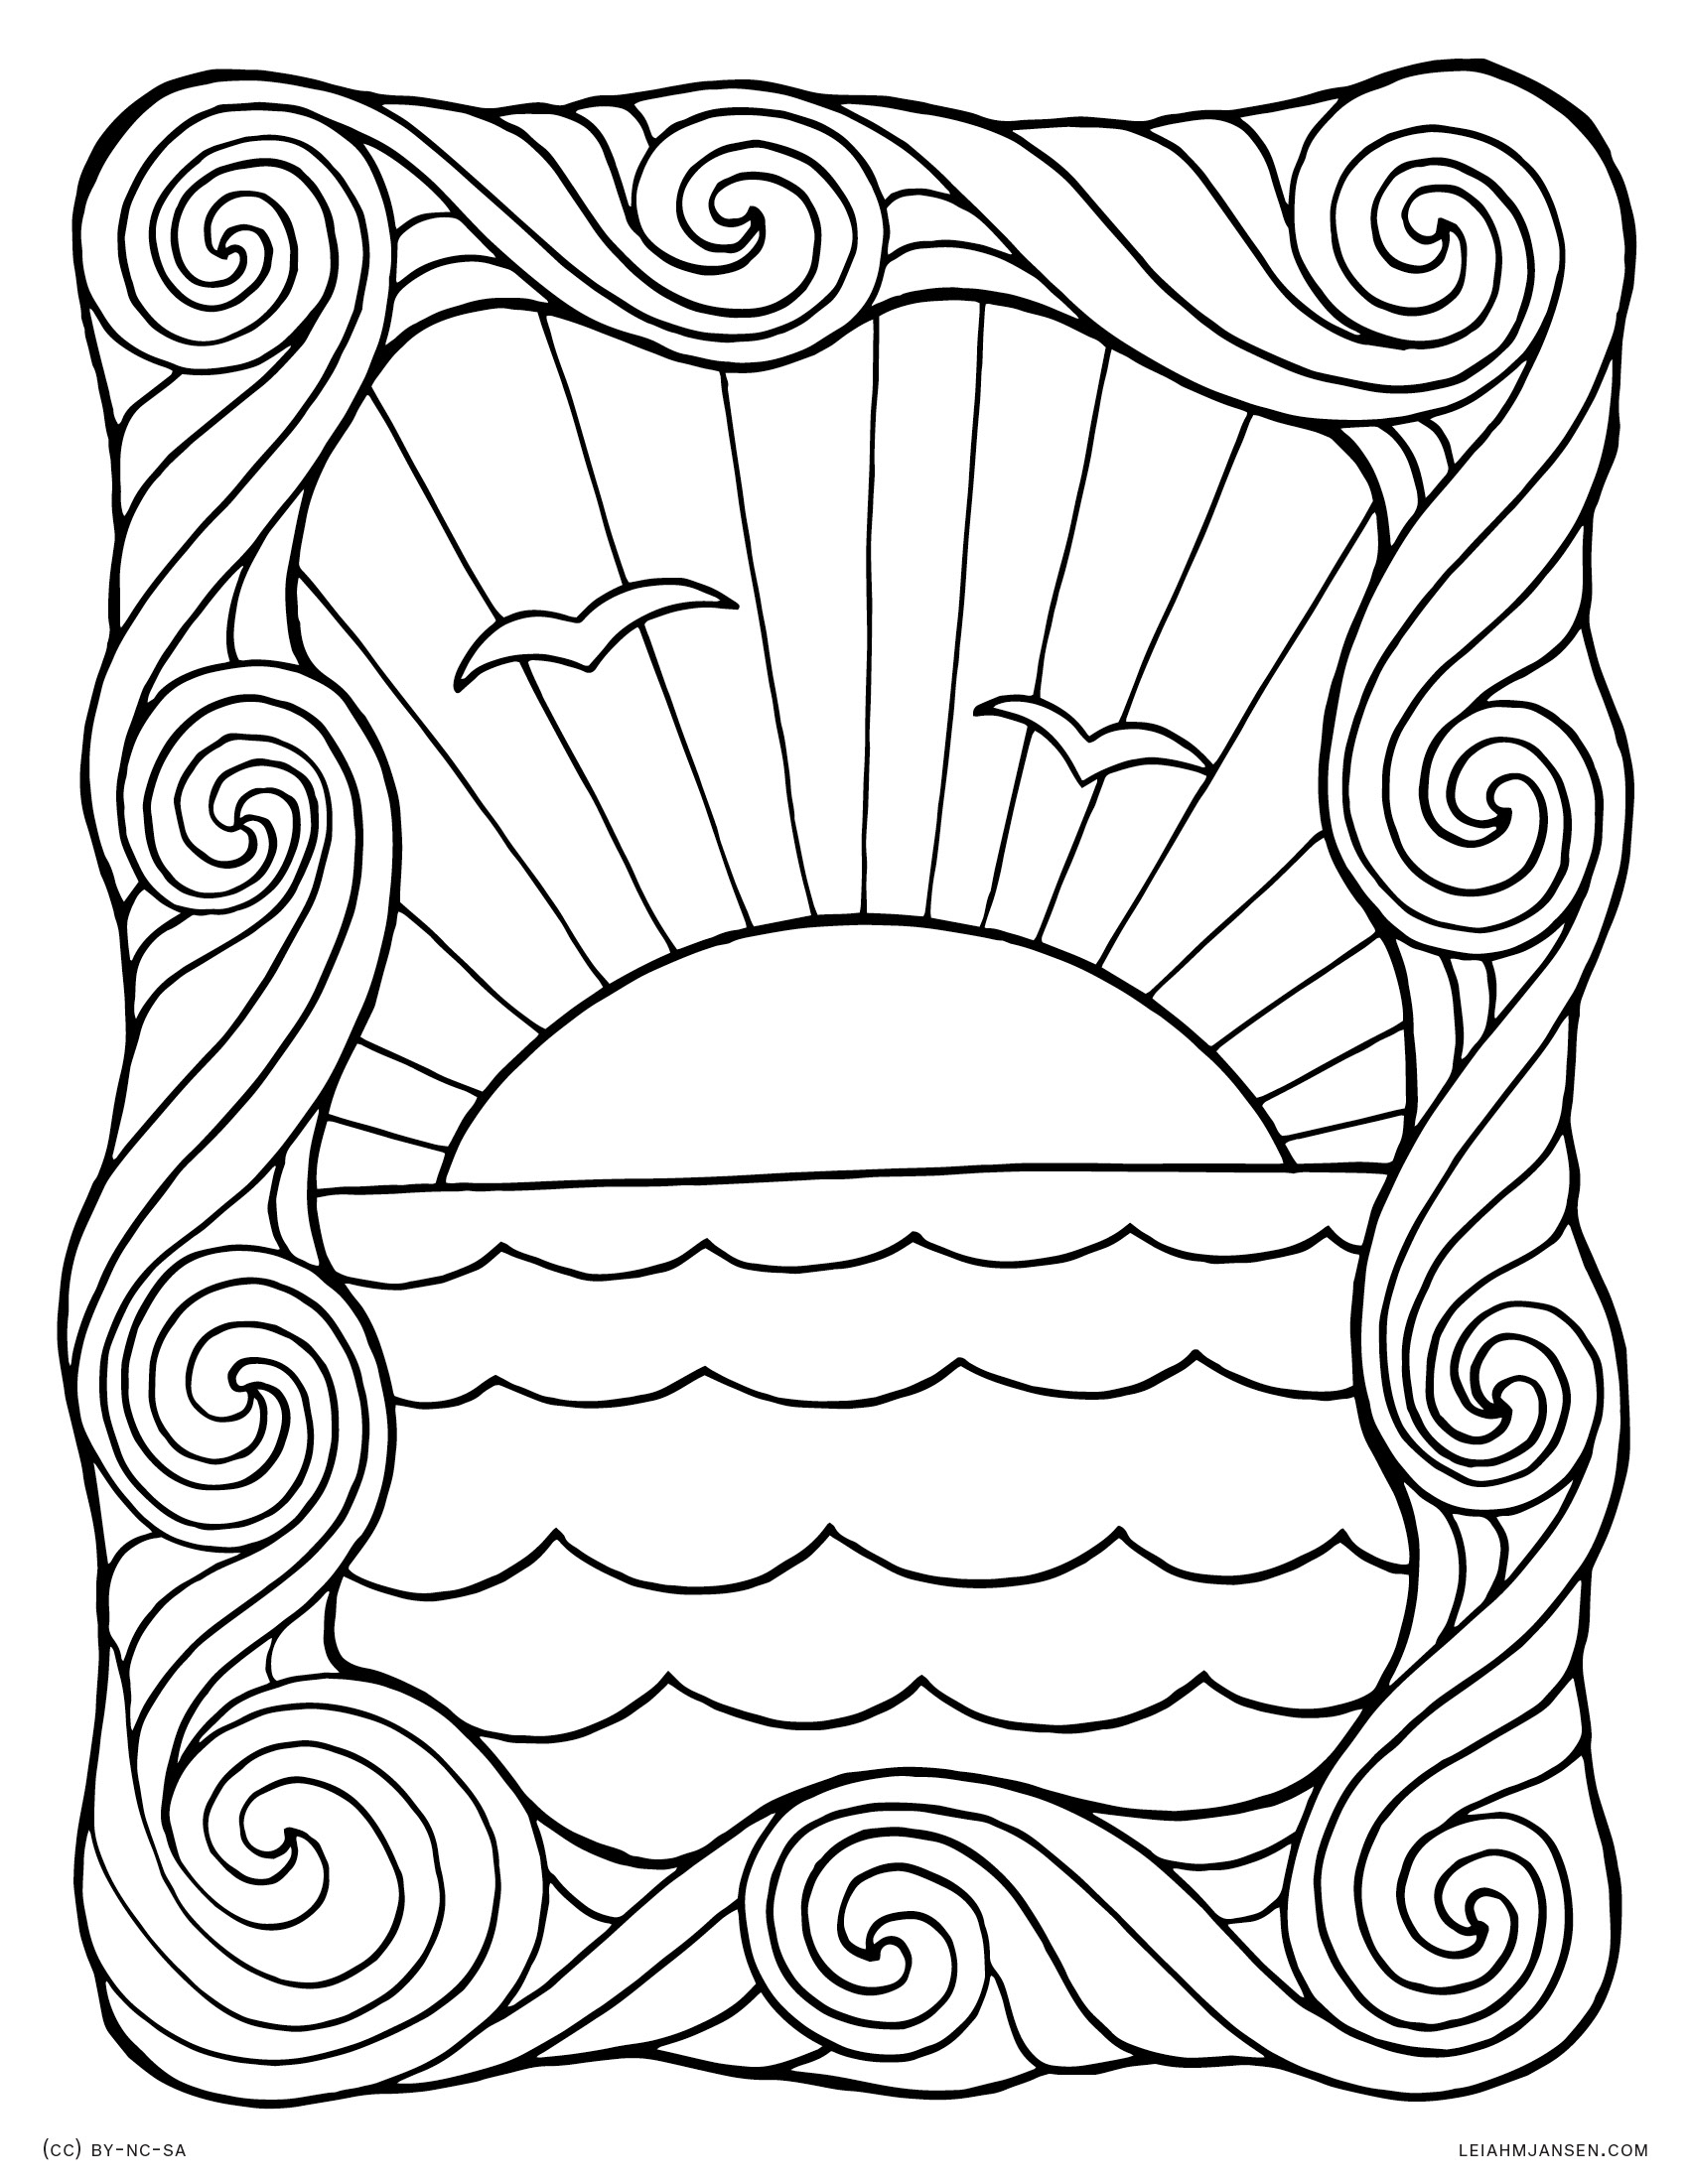 Water Waves Coloring Pages At Getcolorings